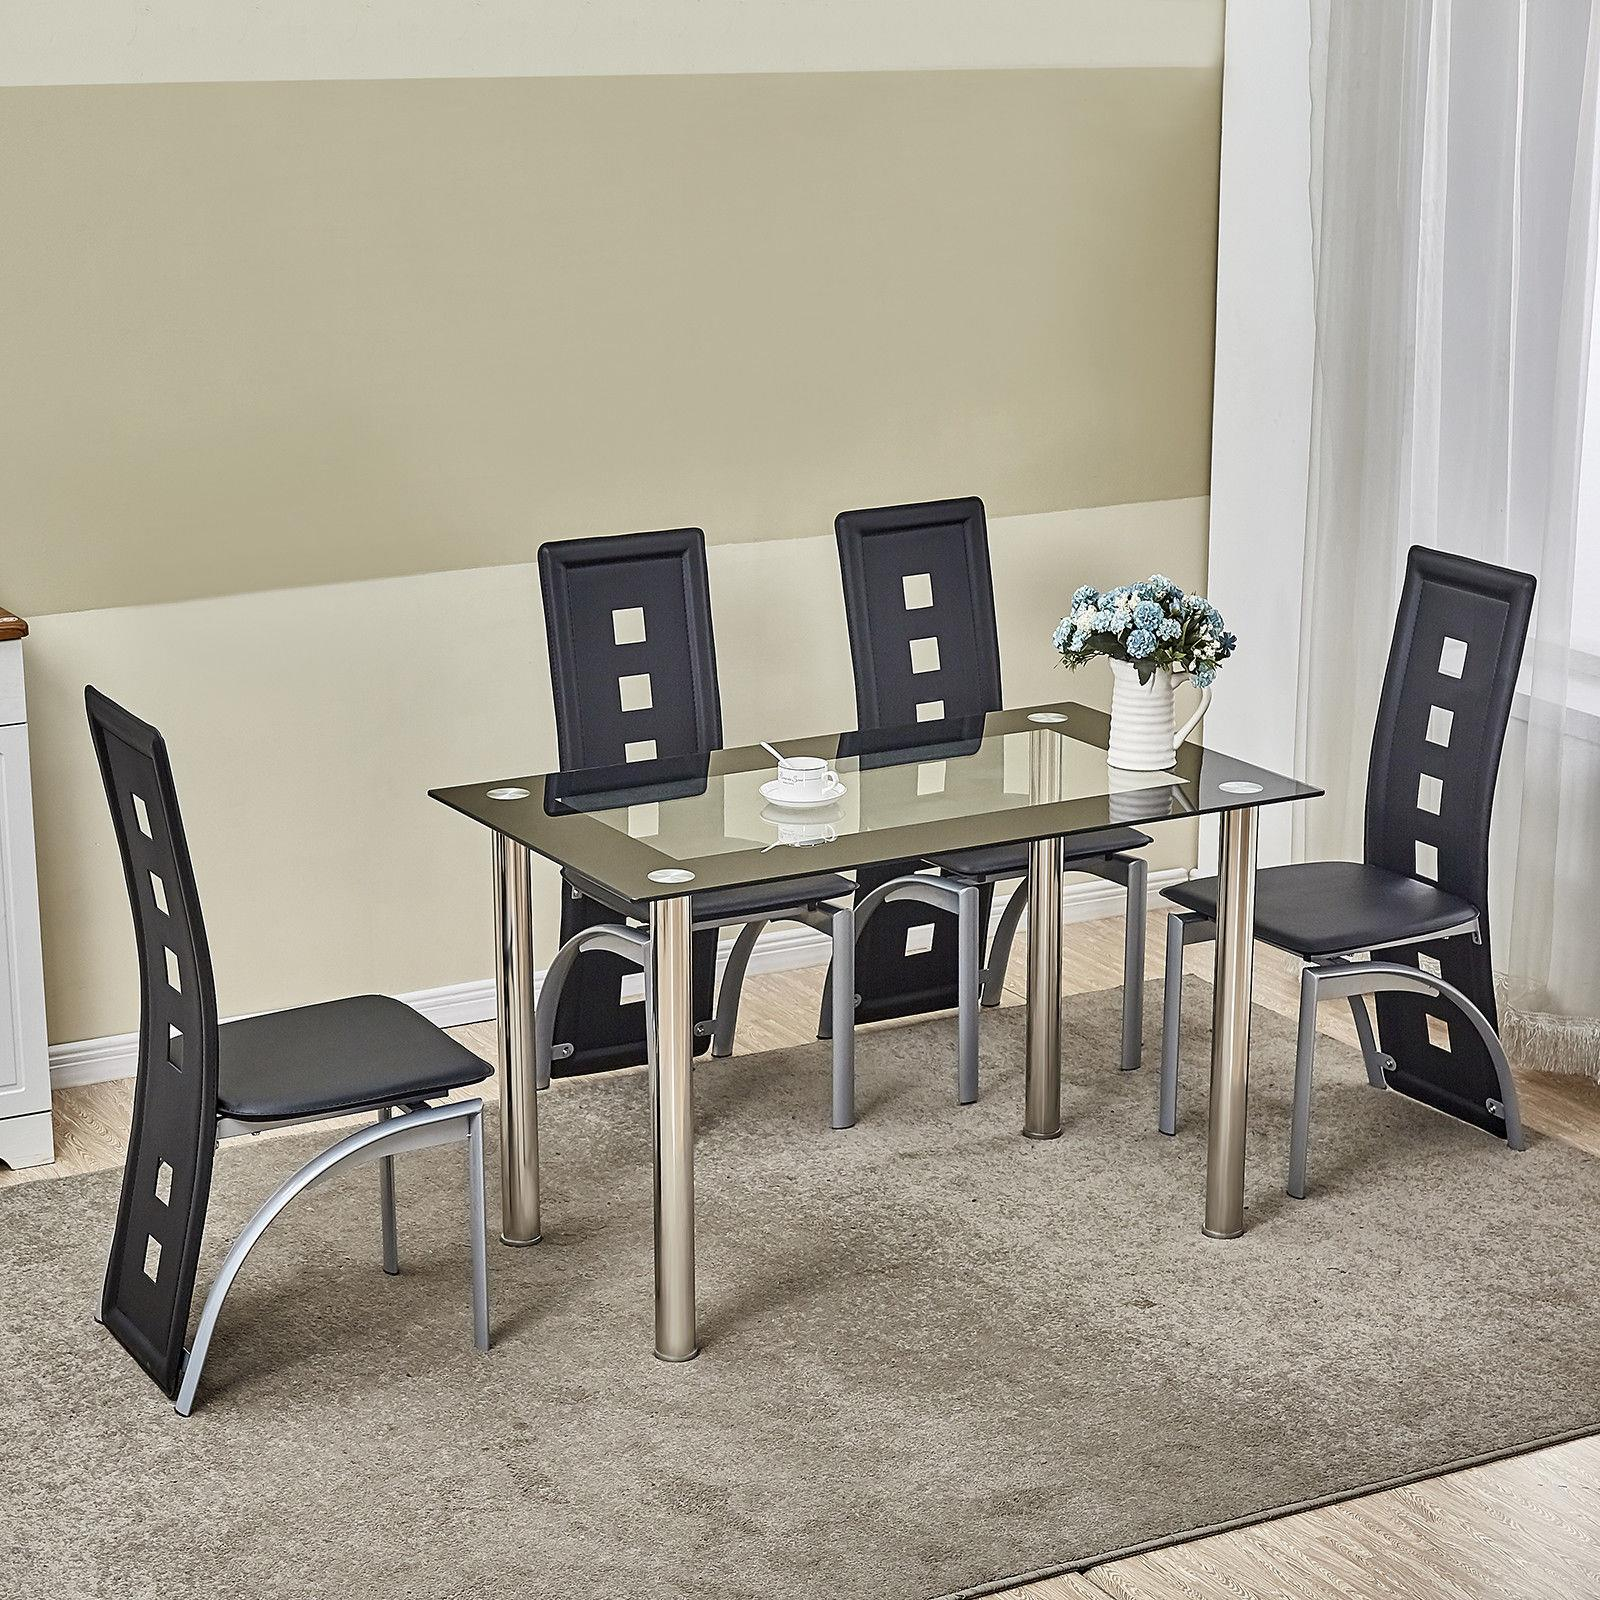 Picture of: 5 Piece Dining Table Set Black Glass 4 Chairs Seats Kitchen Dinette Home Decor Ebay